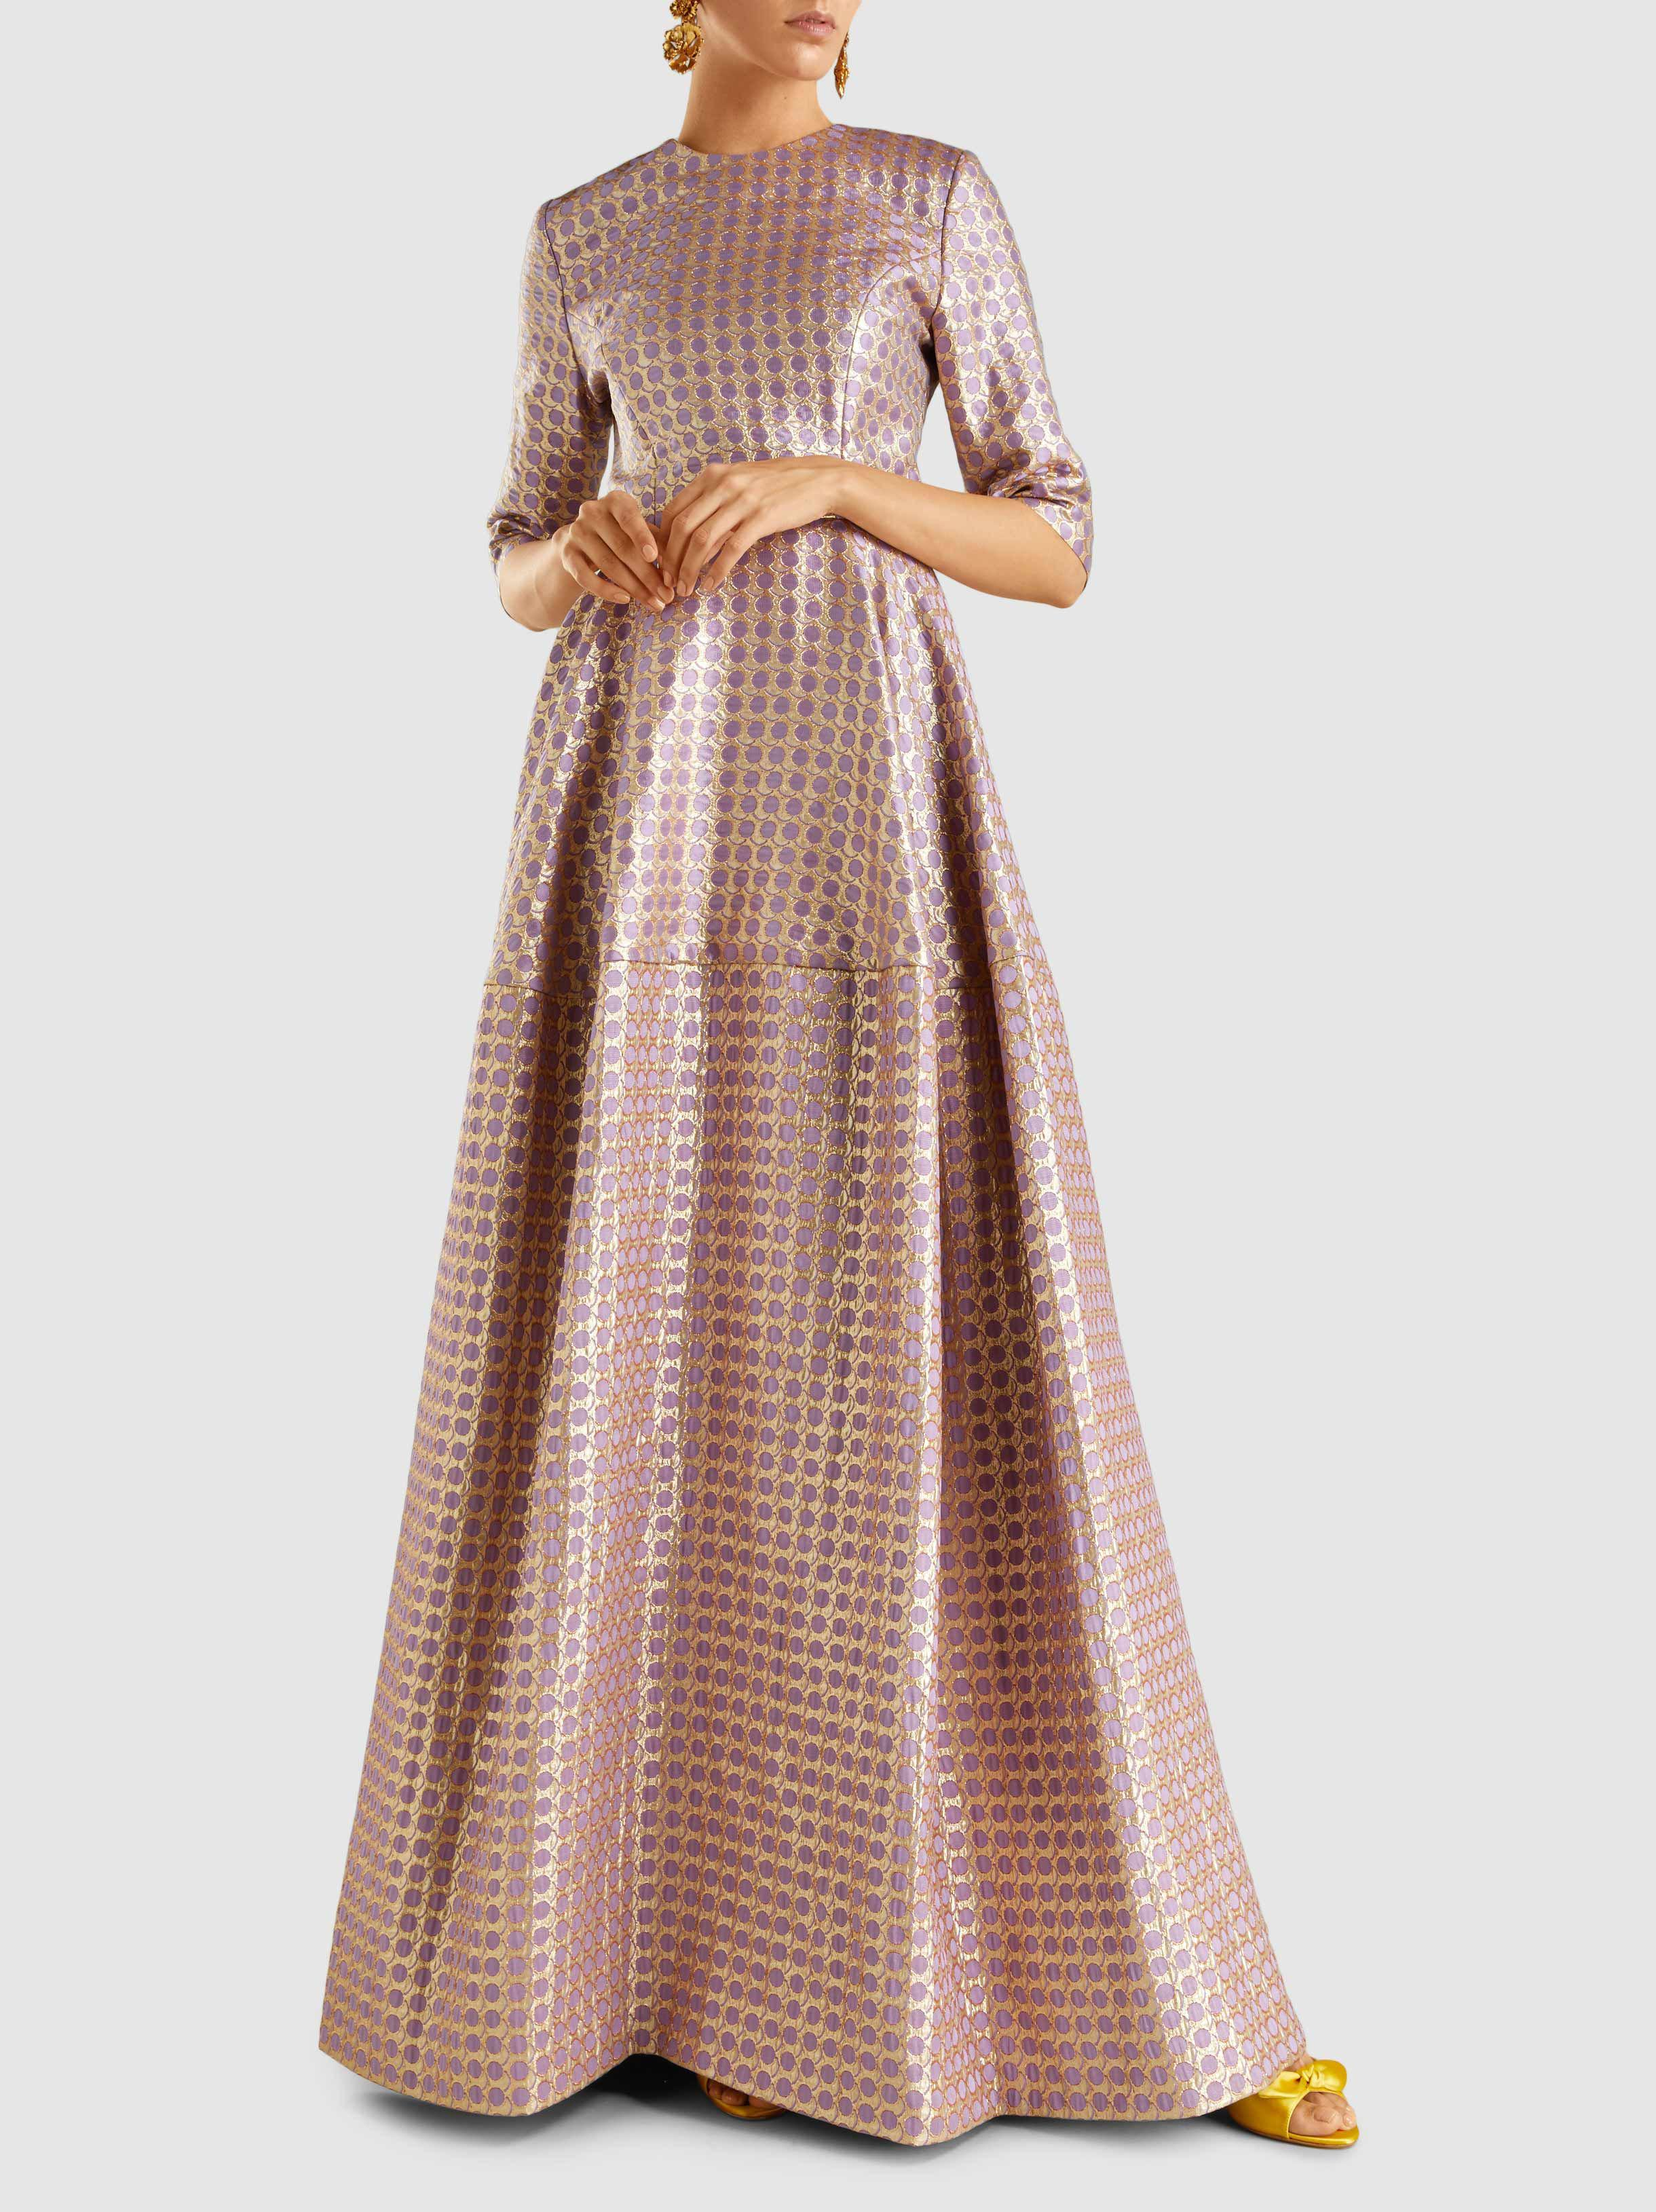 Lyst - Reem Acra Geometric-patterned Gown in Pink